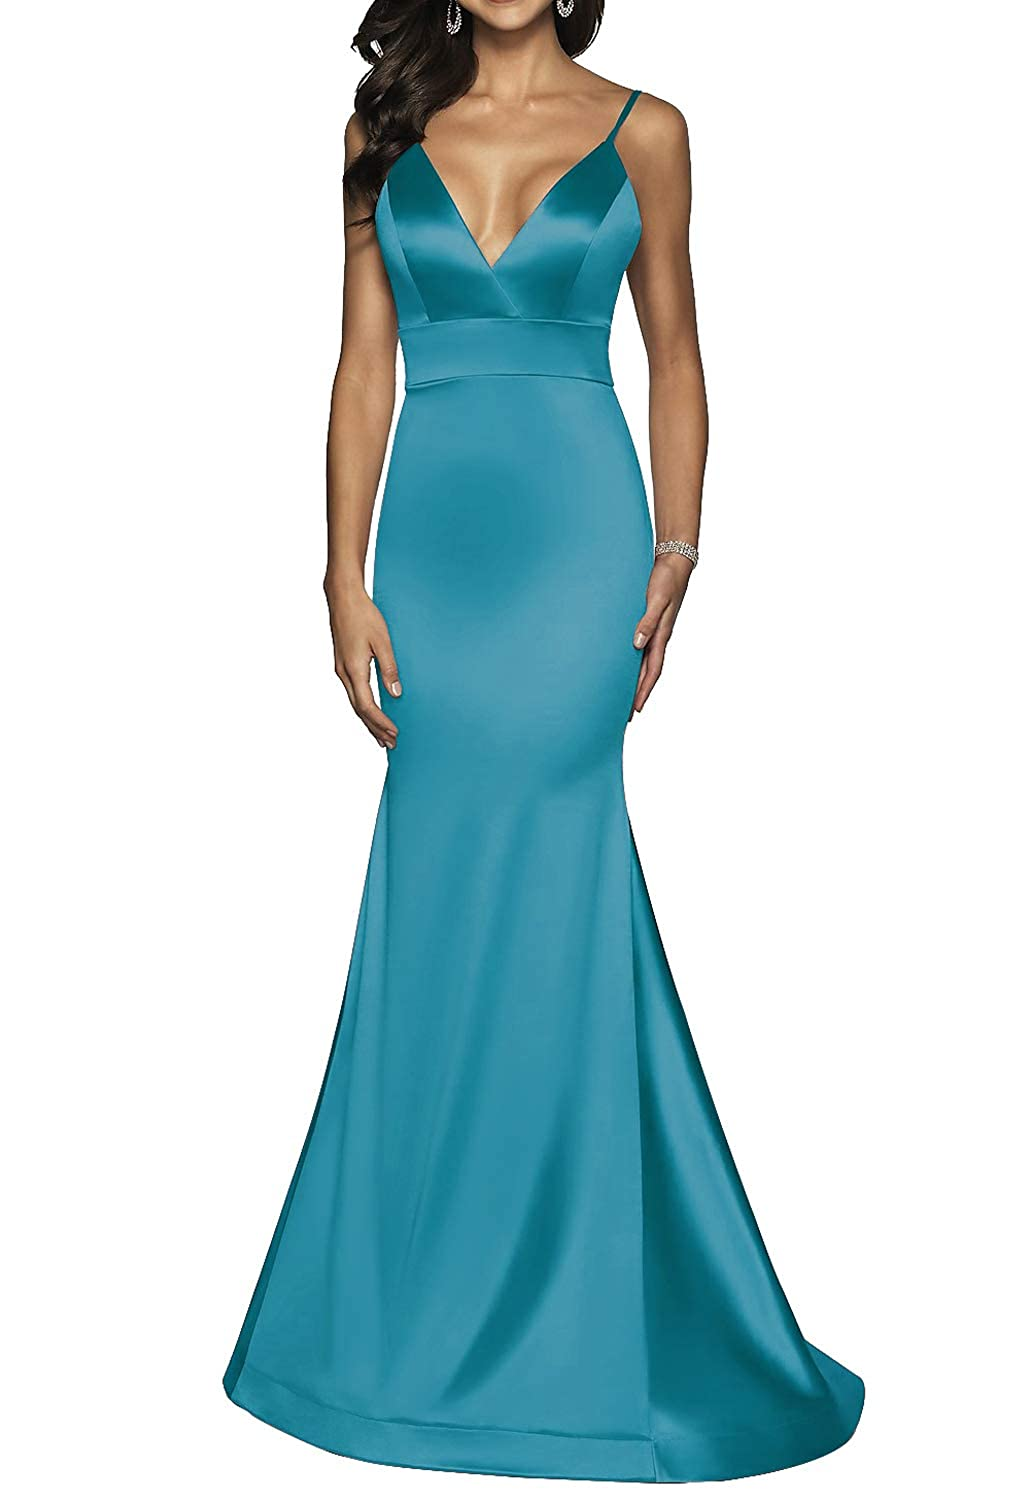 Teal Long VNeck Formal Prom Dress for Women with Trumpet Spaghetti Straps Skirt